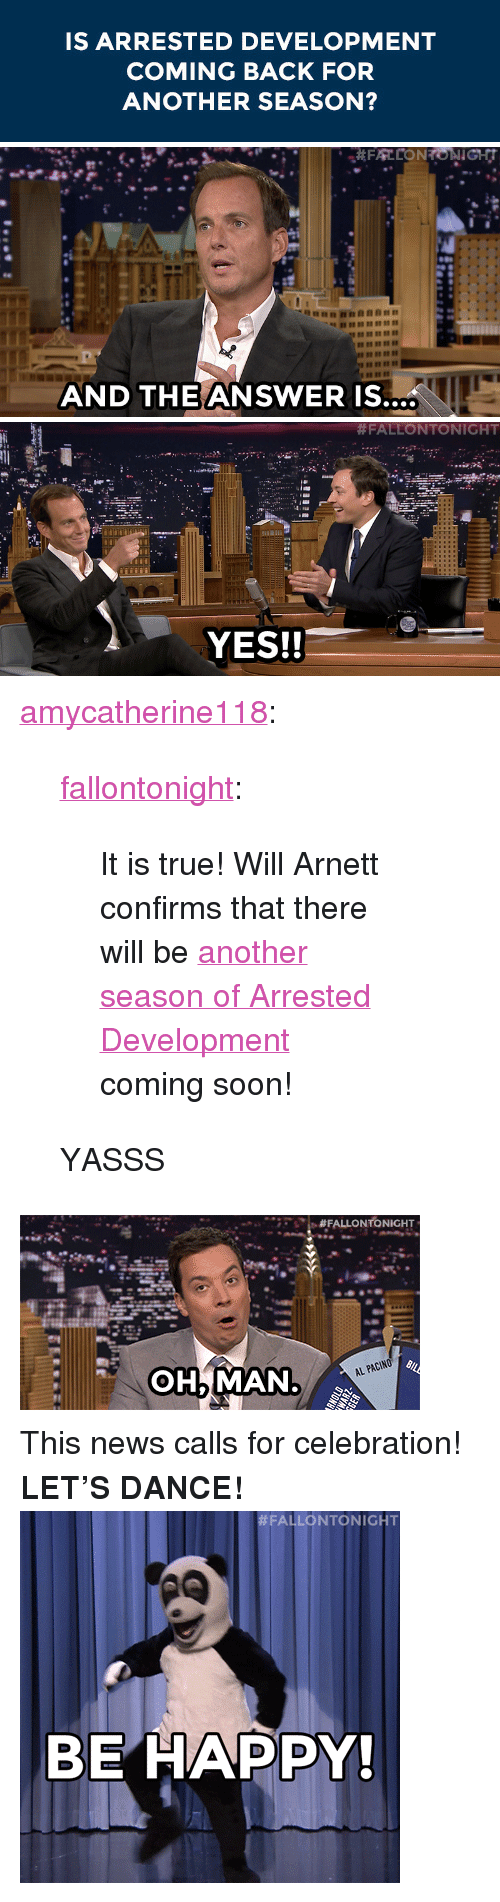 """arrested development: IS ARRESTED DEVELOPMENT  COMING BACK FOR  ANOTHER SEASON?   AND THE ANSWERIS.   #FALLONTONIGHT  YES!! <p><a class=""""tumblr_blog"""" href=""""http://amycatherine118.tumblr.com/post/94308432425/fallontonight-it-is-true-will-arnett-confirms"""" target=""""_blank"""">amycatherine118</a>:</p> <blockquote> <p><a class=""""tumblr_blog"""" href=""""http://fallontonight.tumblr.com/post/94207322024/it-is-true-will-arnett-confirms-that-there-will"""" target=""""_blank"""">fallontonight</a>:</p> <blockquote> <p>It is true! Will Arnett confirms that there will be <a href=""""https://www.youtube.com/watch?v=Esyx4oLghwo&amp;list=UU8-Th83bH_thdKZDJCrn88g"""" target=""""_blank"""">another season of Arrested Development</a> coming soon!</p> </blockquote> <p>YASSS</p> </blockquote> <p><img alt="""""""" src=""""https://78.media.tumblr.com/a288b6afce29b4ca94a4d98a2cf60260/tumblr_n8jzt6OrZK1tv4k5po1_400.gif""""/></p> <p>This news calls for celebration! <strong>LET&rsquo;S DANCE!</strong></p> <p><img alt="""""""" src=""""https://78.media.tumblr.com/3a3a96fd61346a36d89bf74df6827a50/tumblr_inline_n8re8svyMa1qgt12i.gif""""/></p>"""